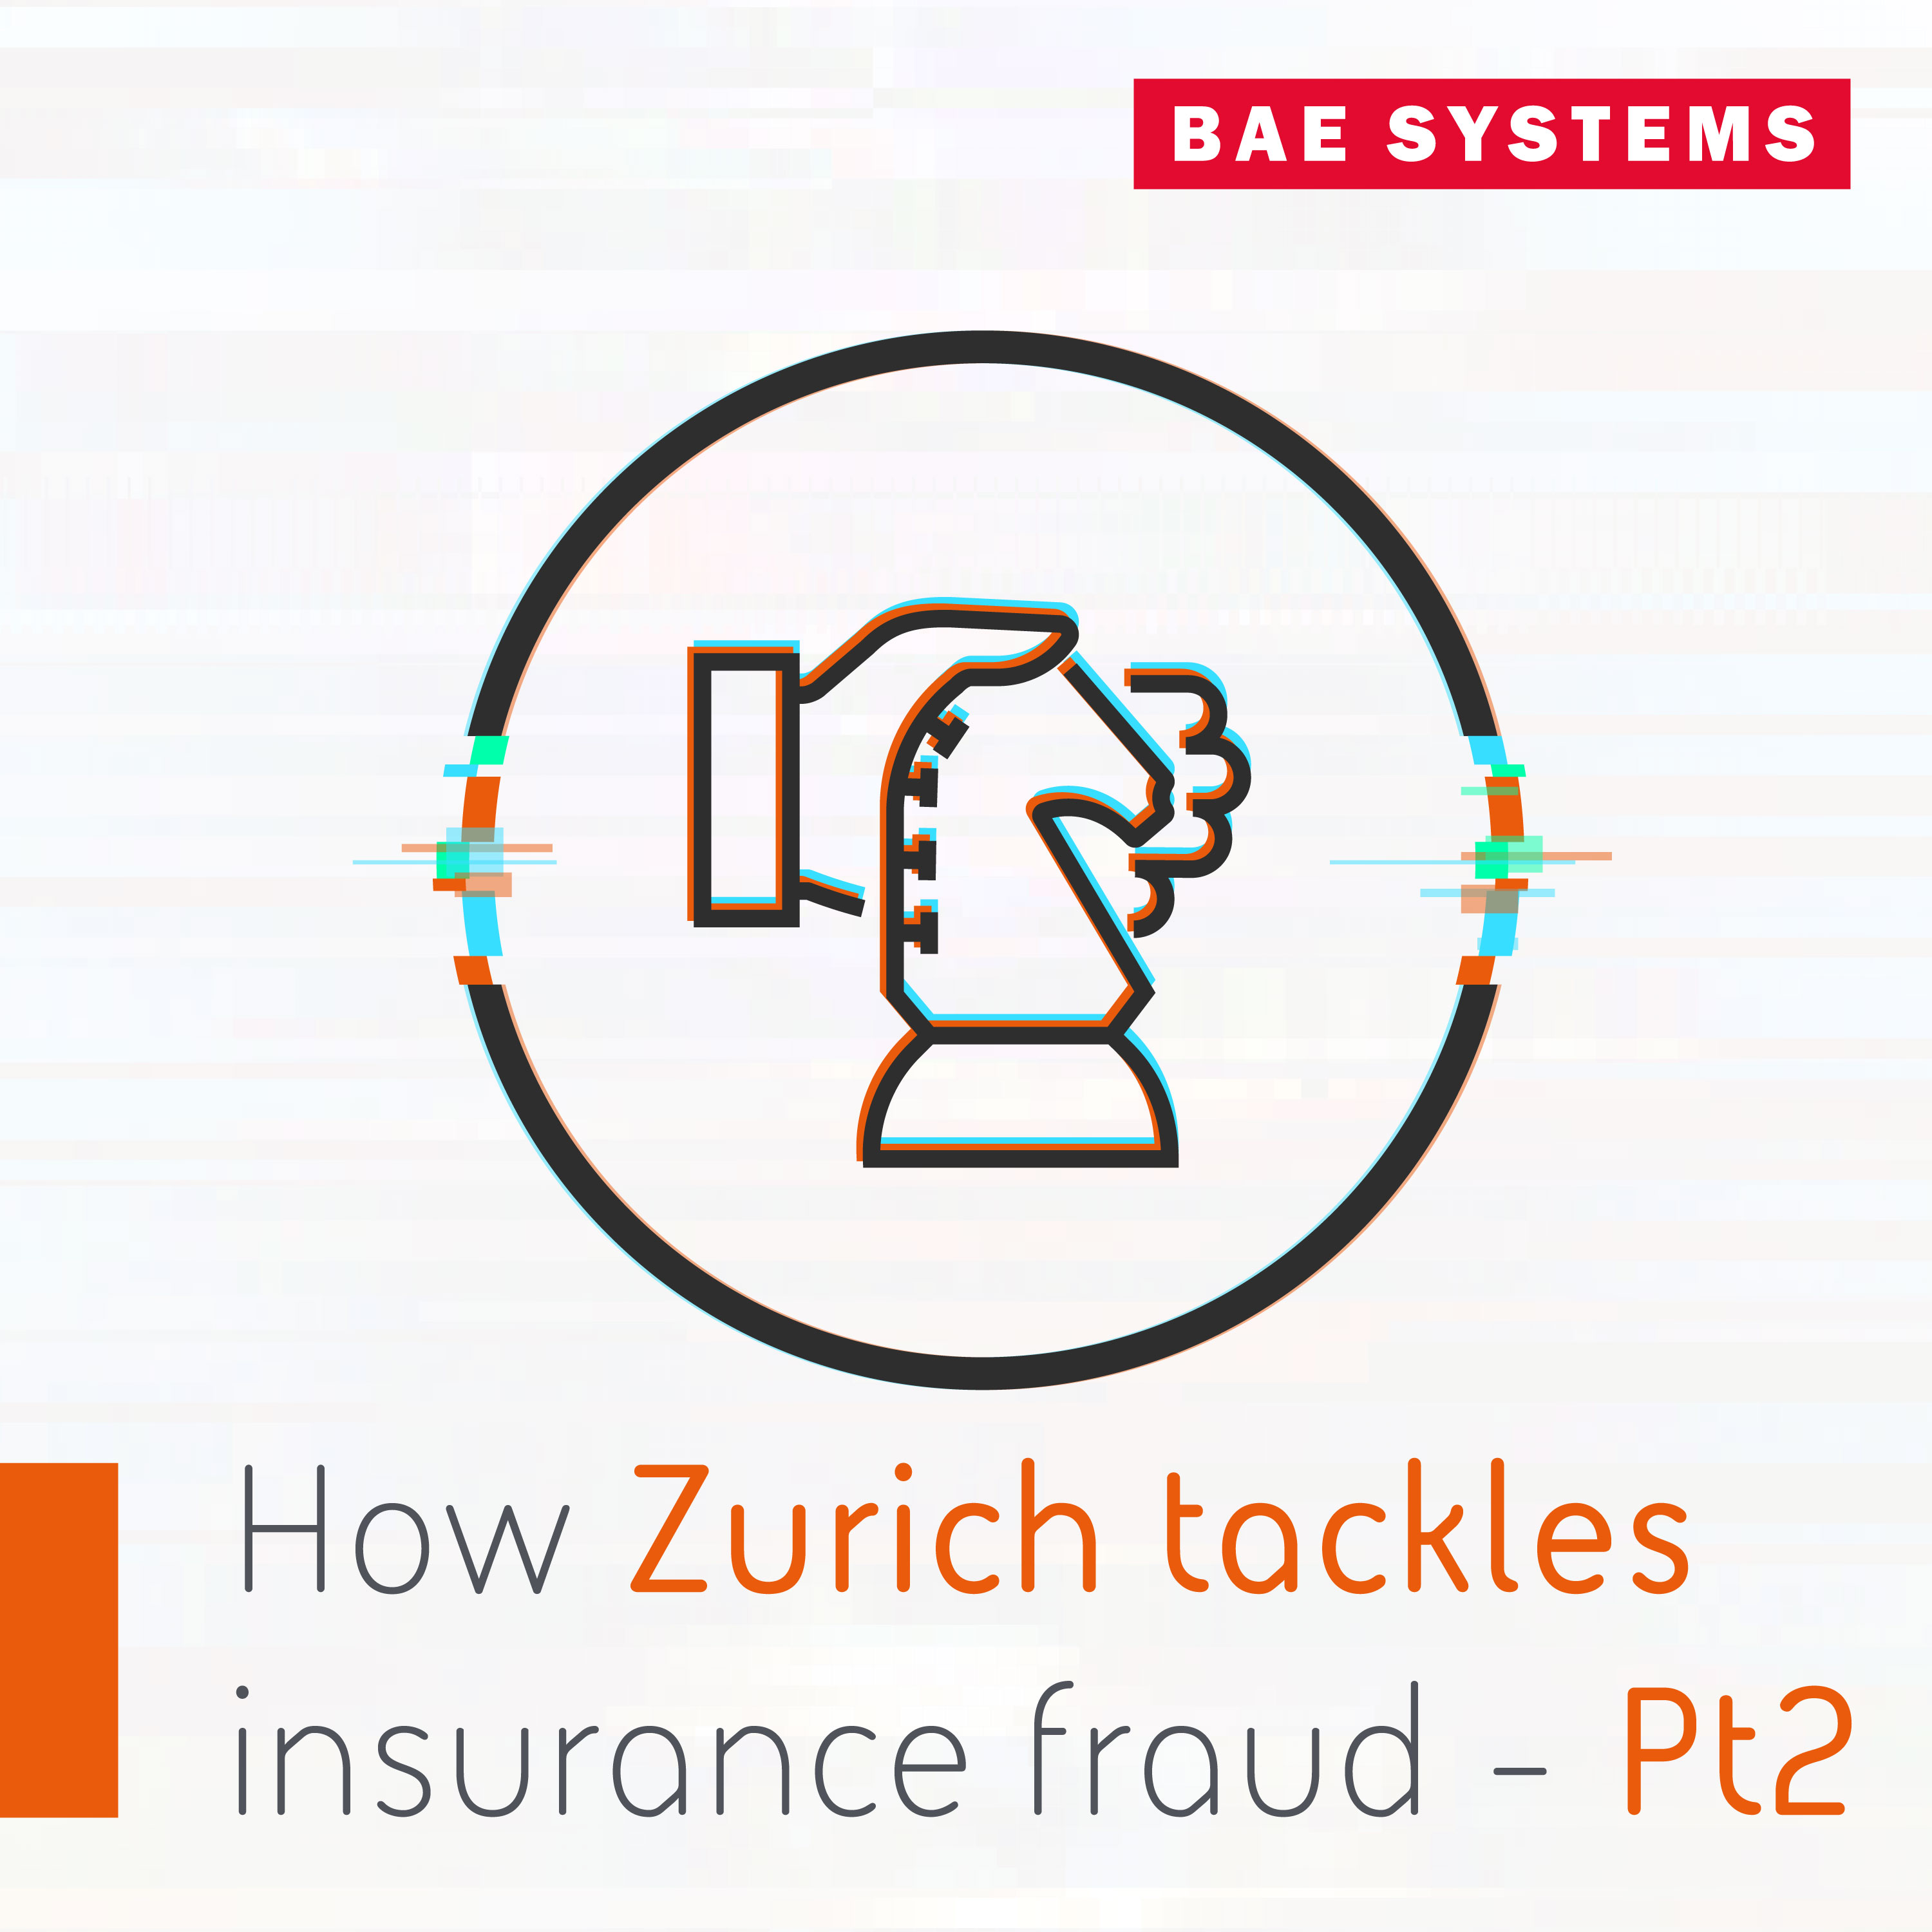 The Intelligence Download - Zurich's views on insurance fraud Pt2